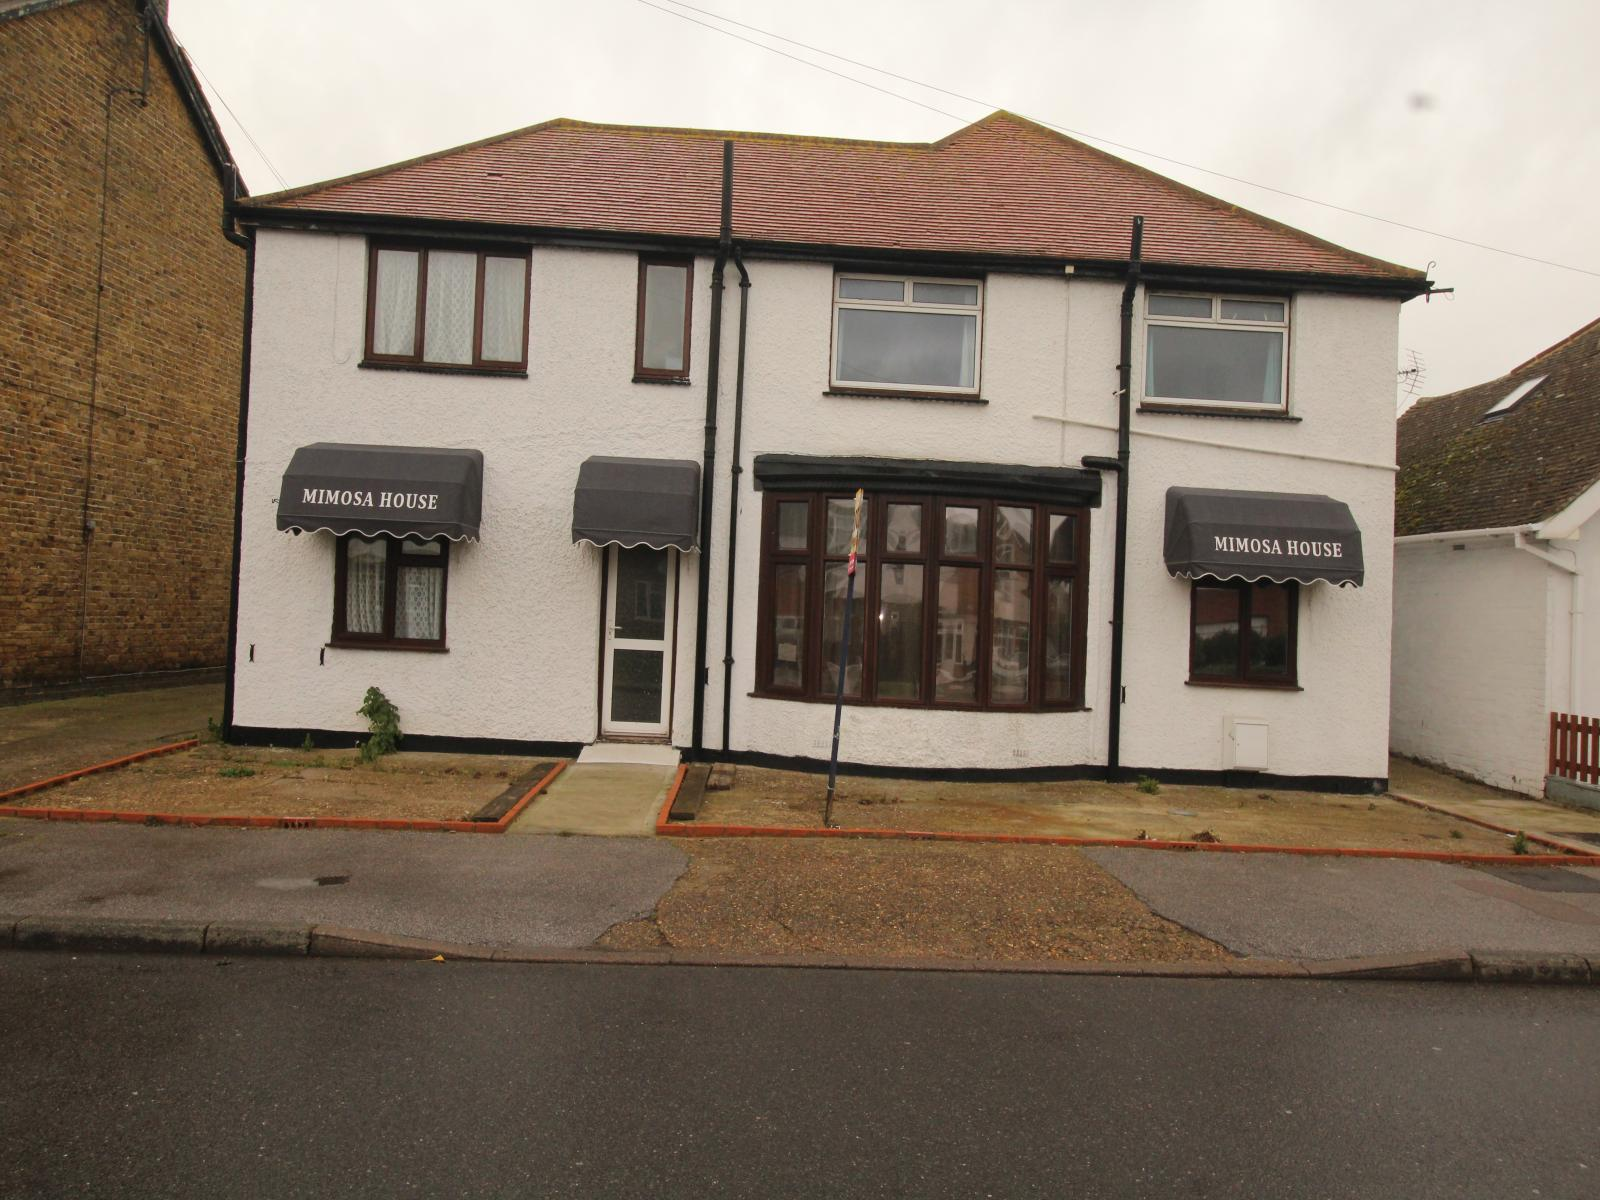 Mimosa House, Herne Bay